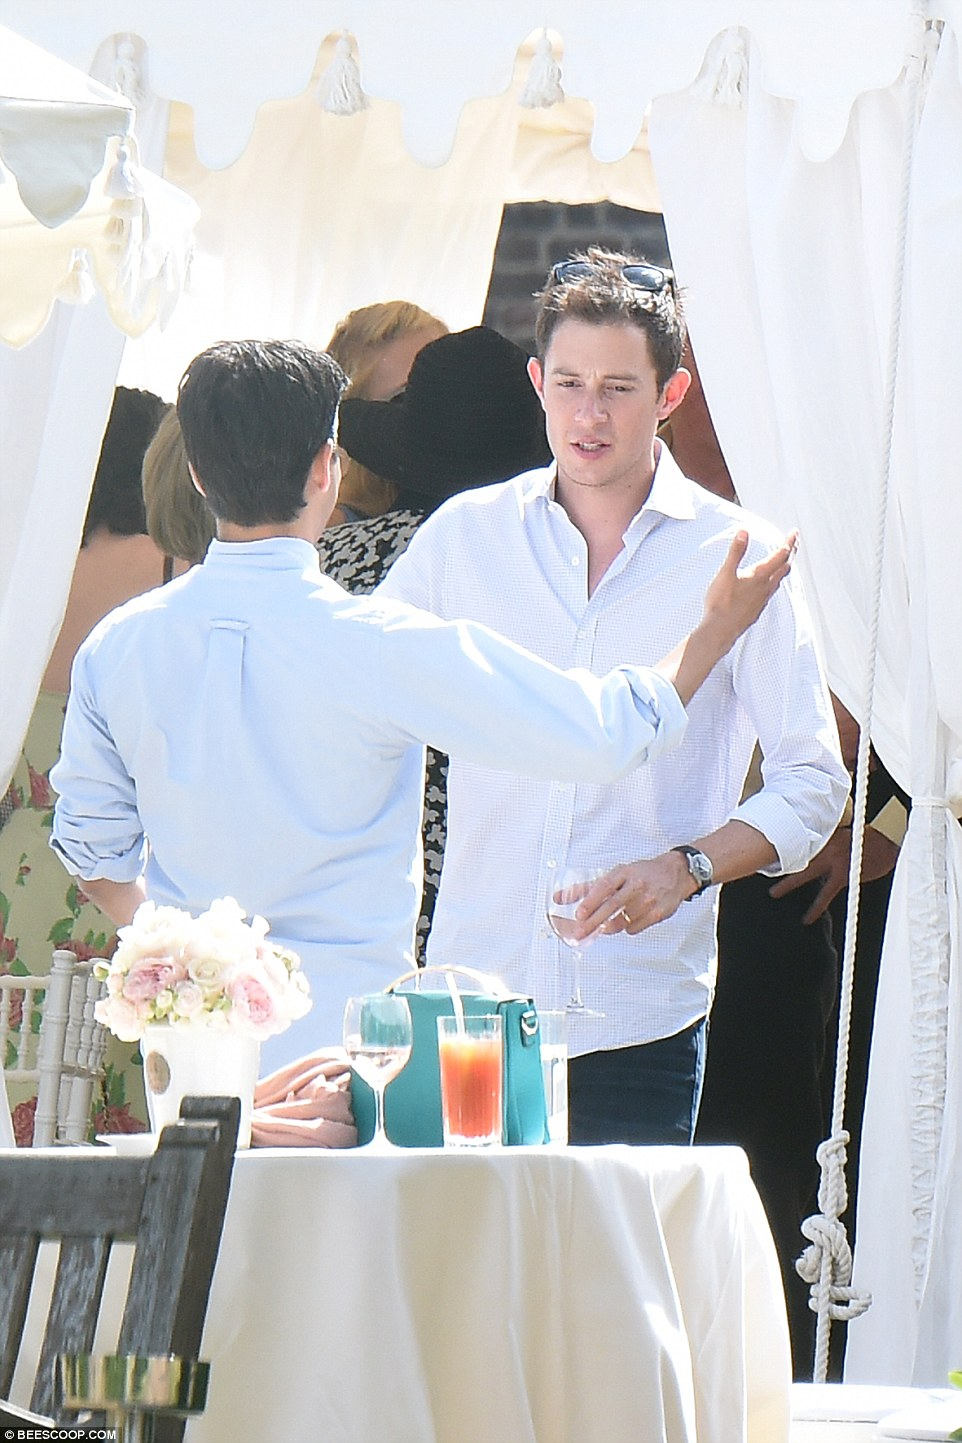 Thanks for coming: Newlywed James Rothschild has a casual look as he works the party, no doubt thanking friends and family for coming along